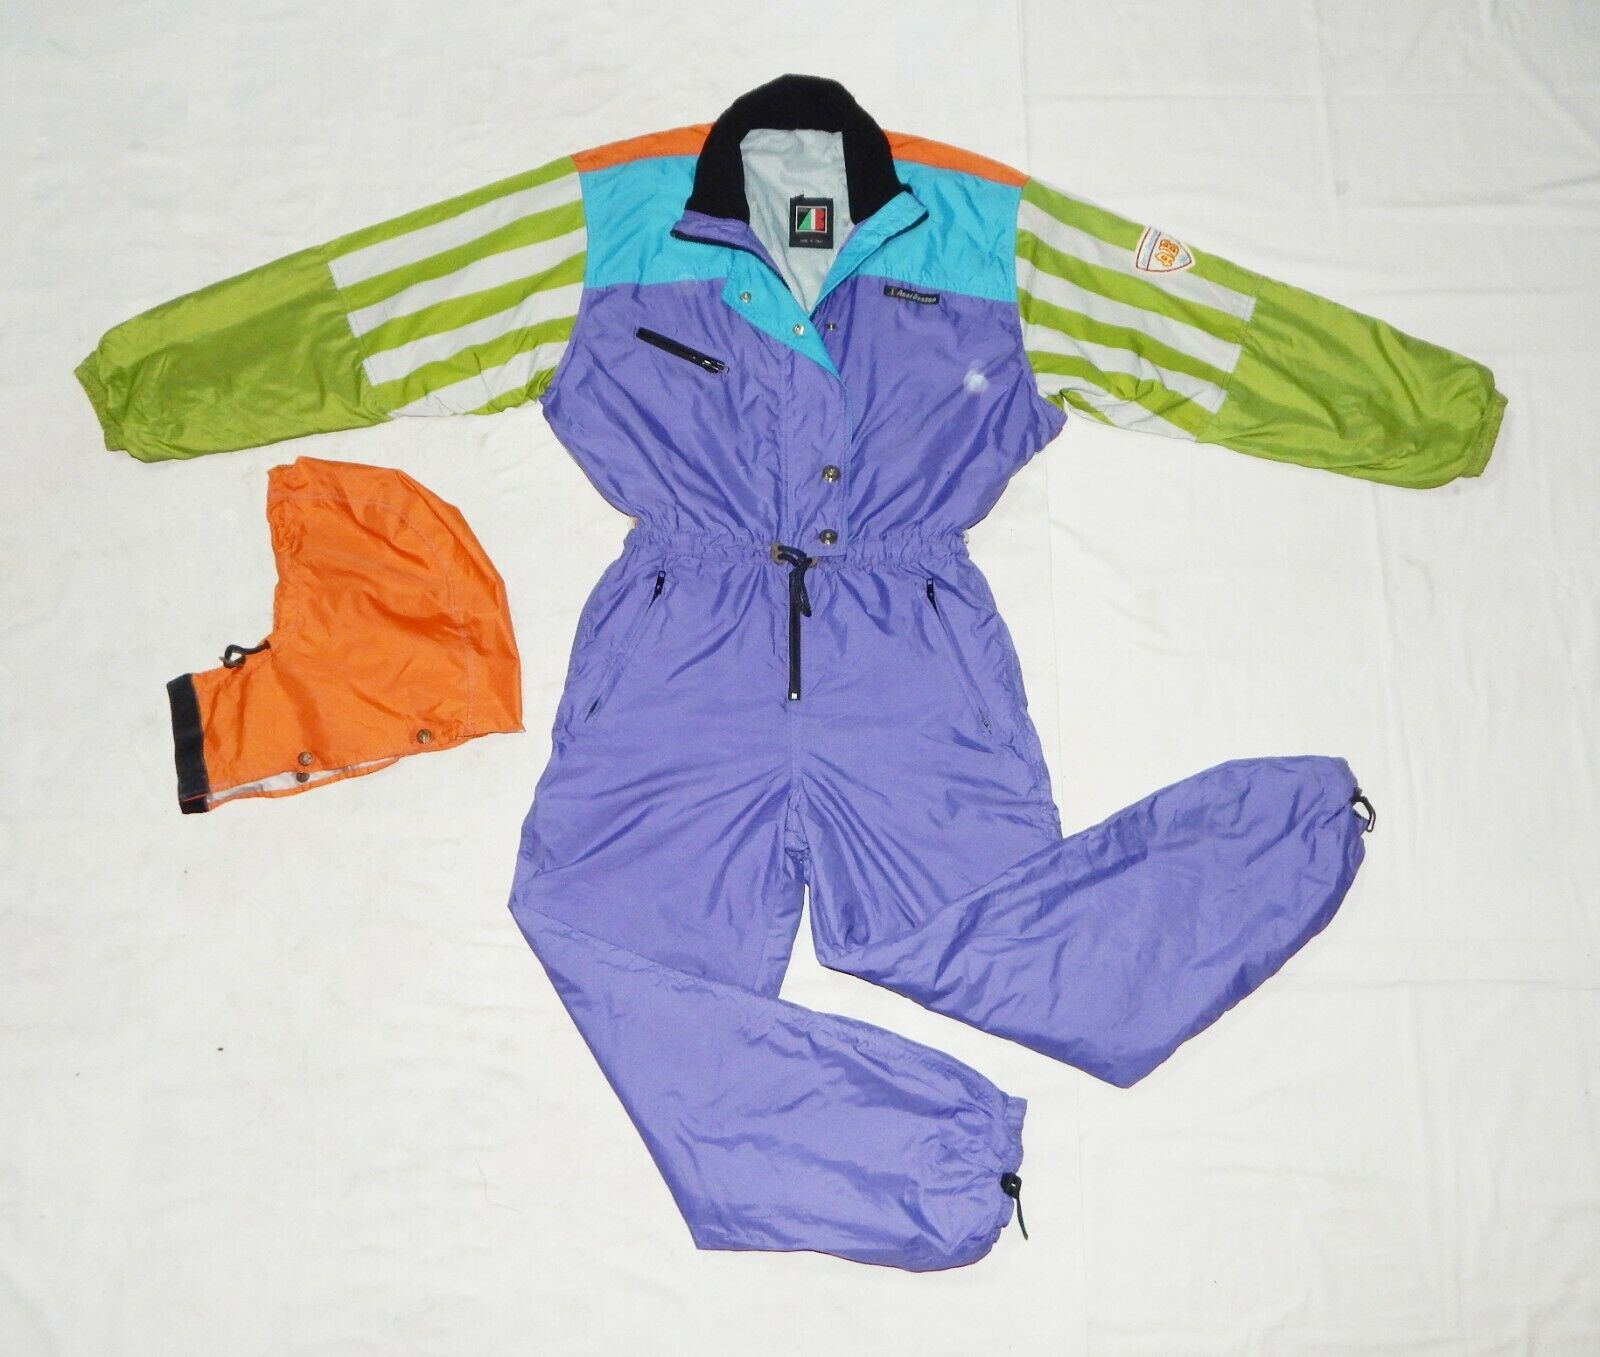 ANZI BESSON VTG 90s damen All in One Thermal Ski Suit, IT44,GB34 12,F40,Multic.